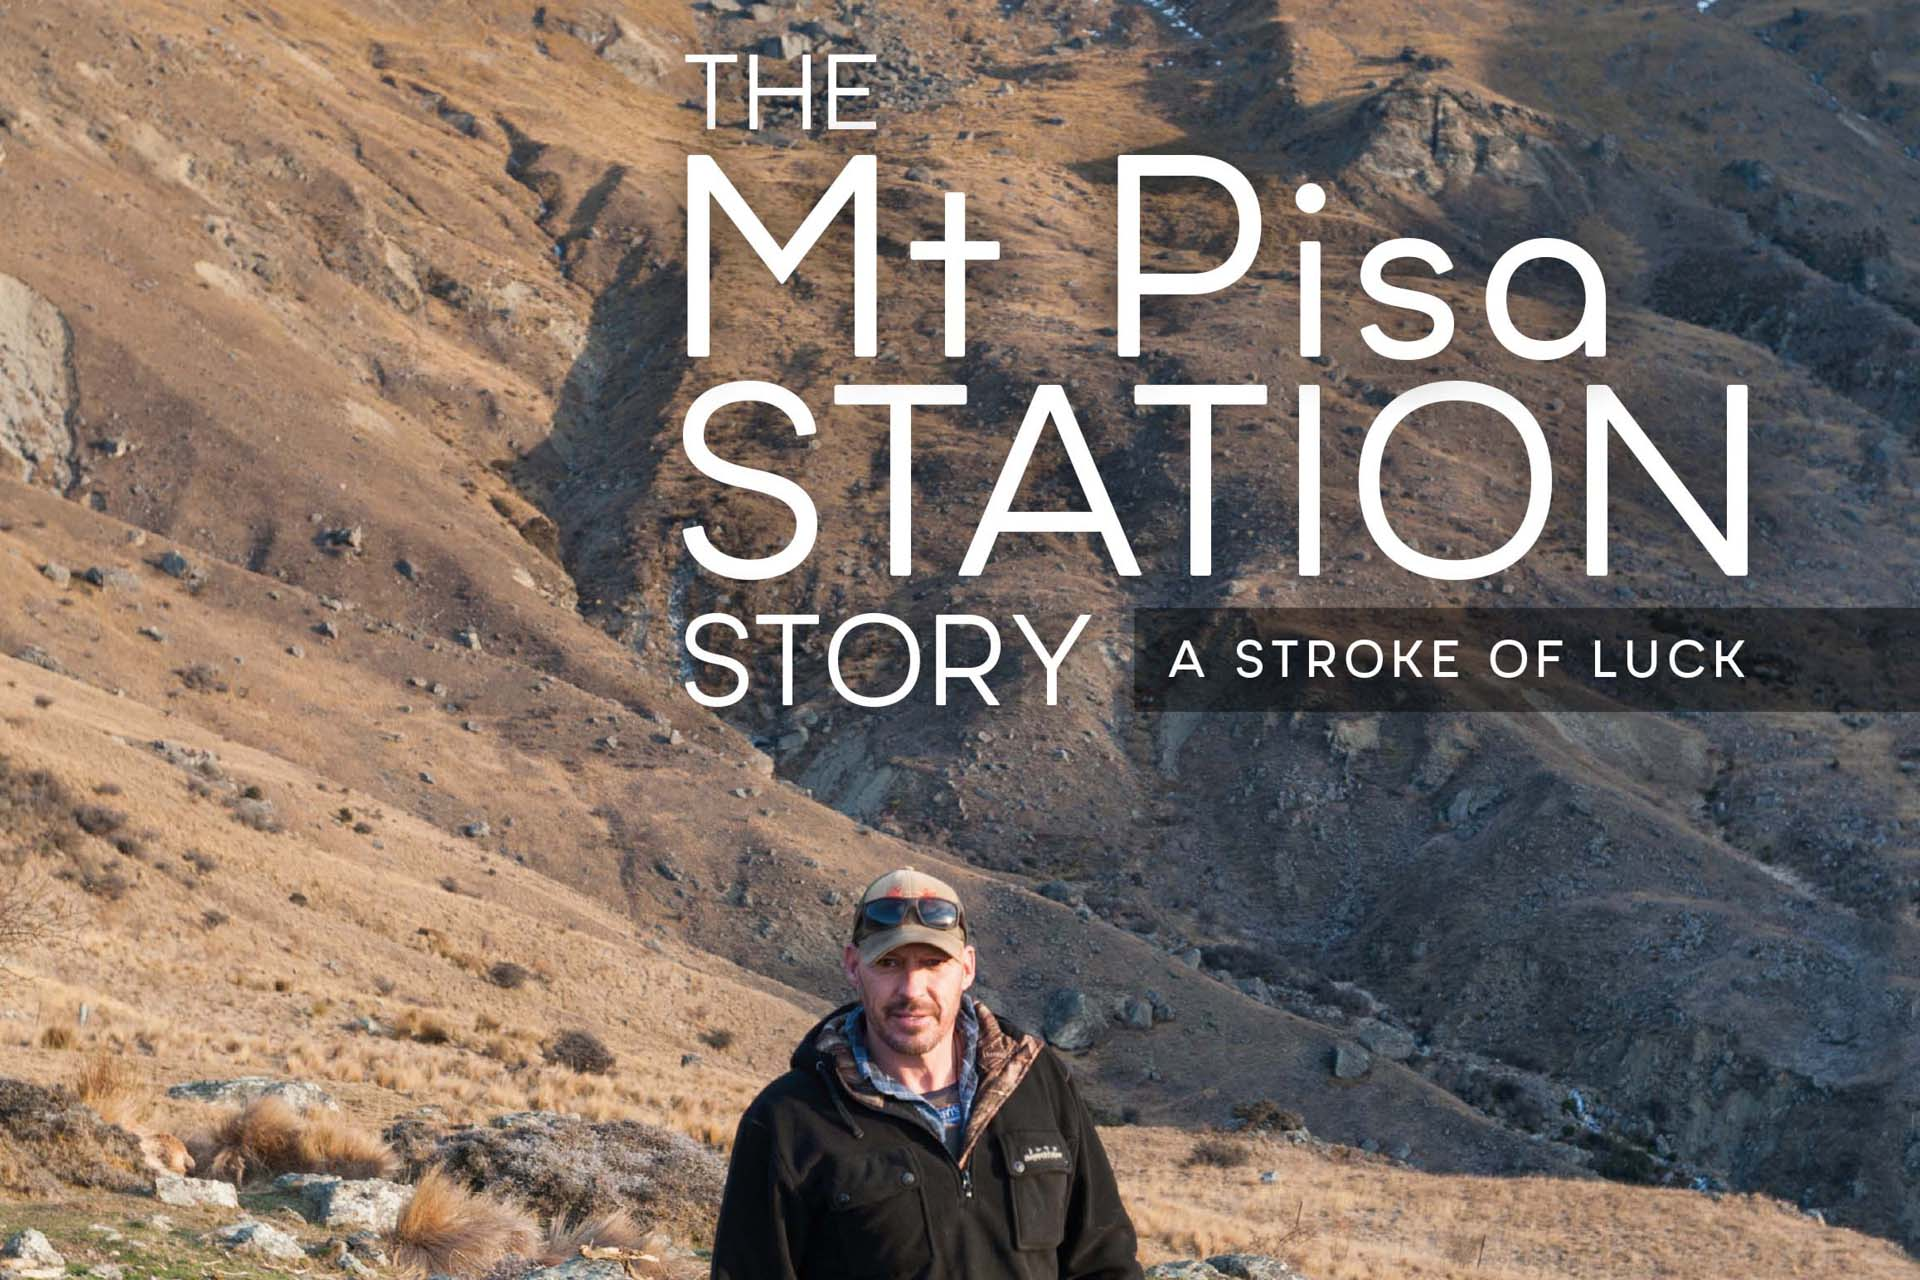 The Mt Pisa Station Story